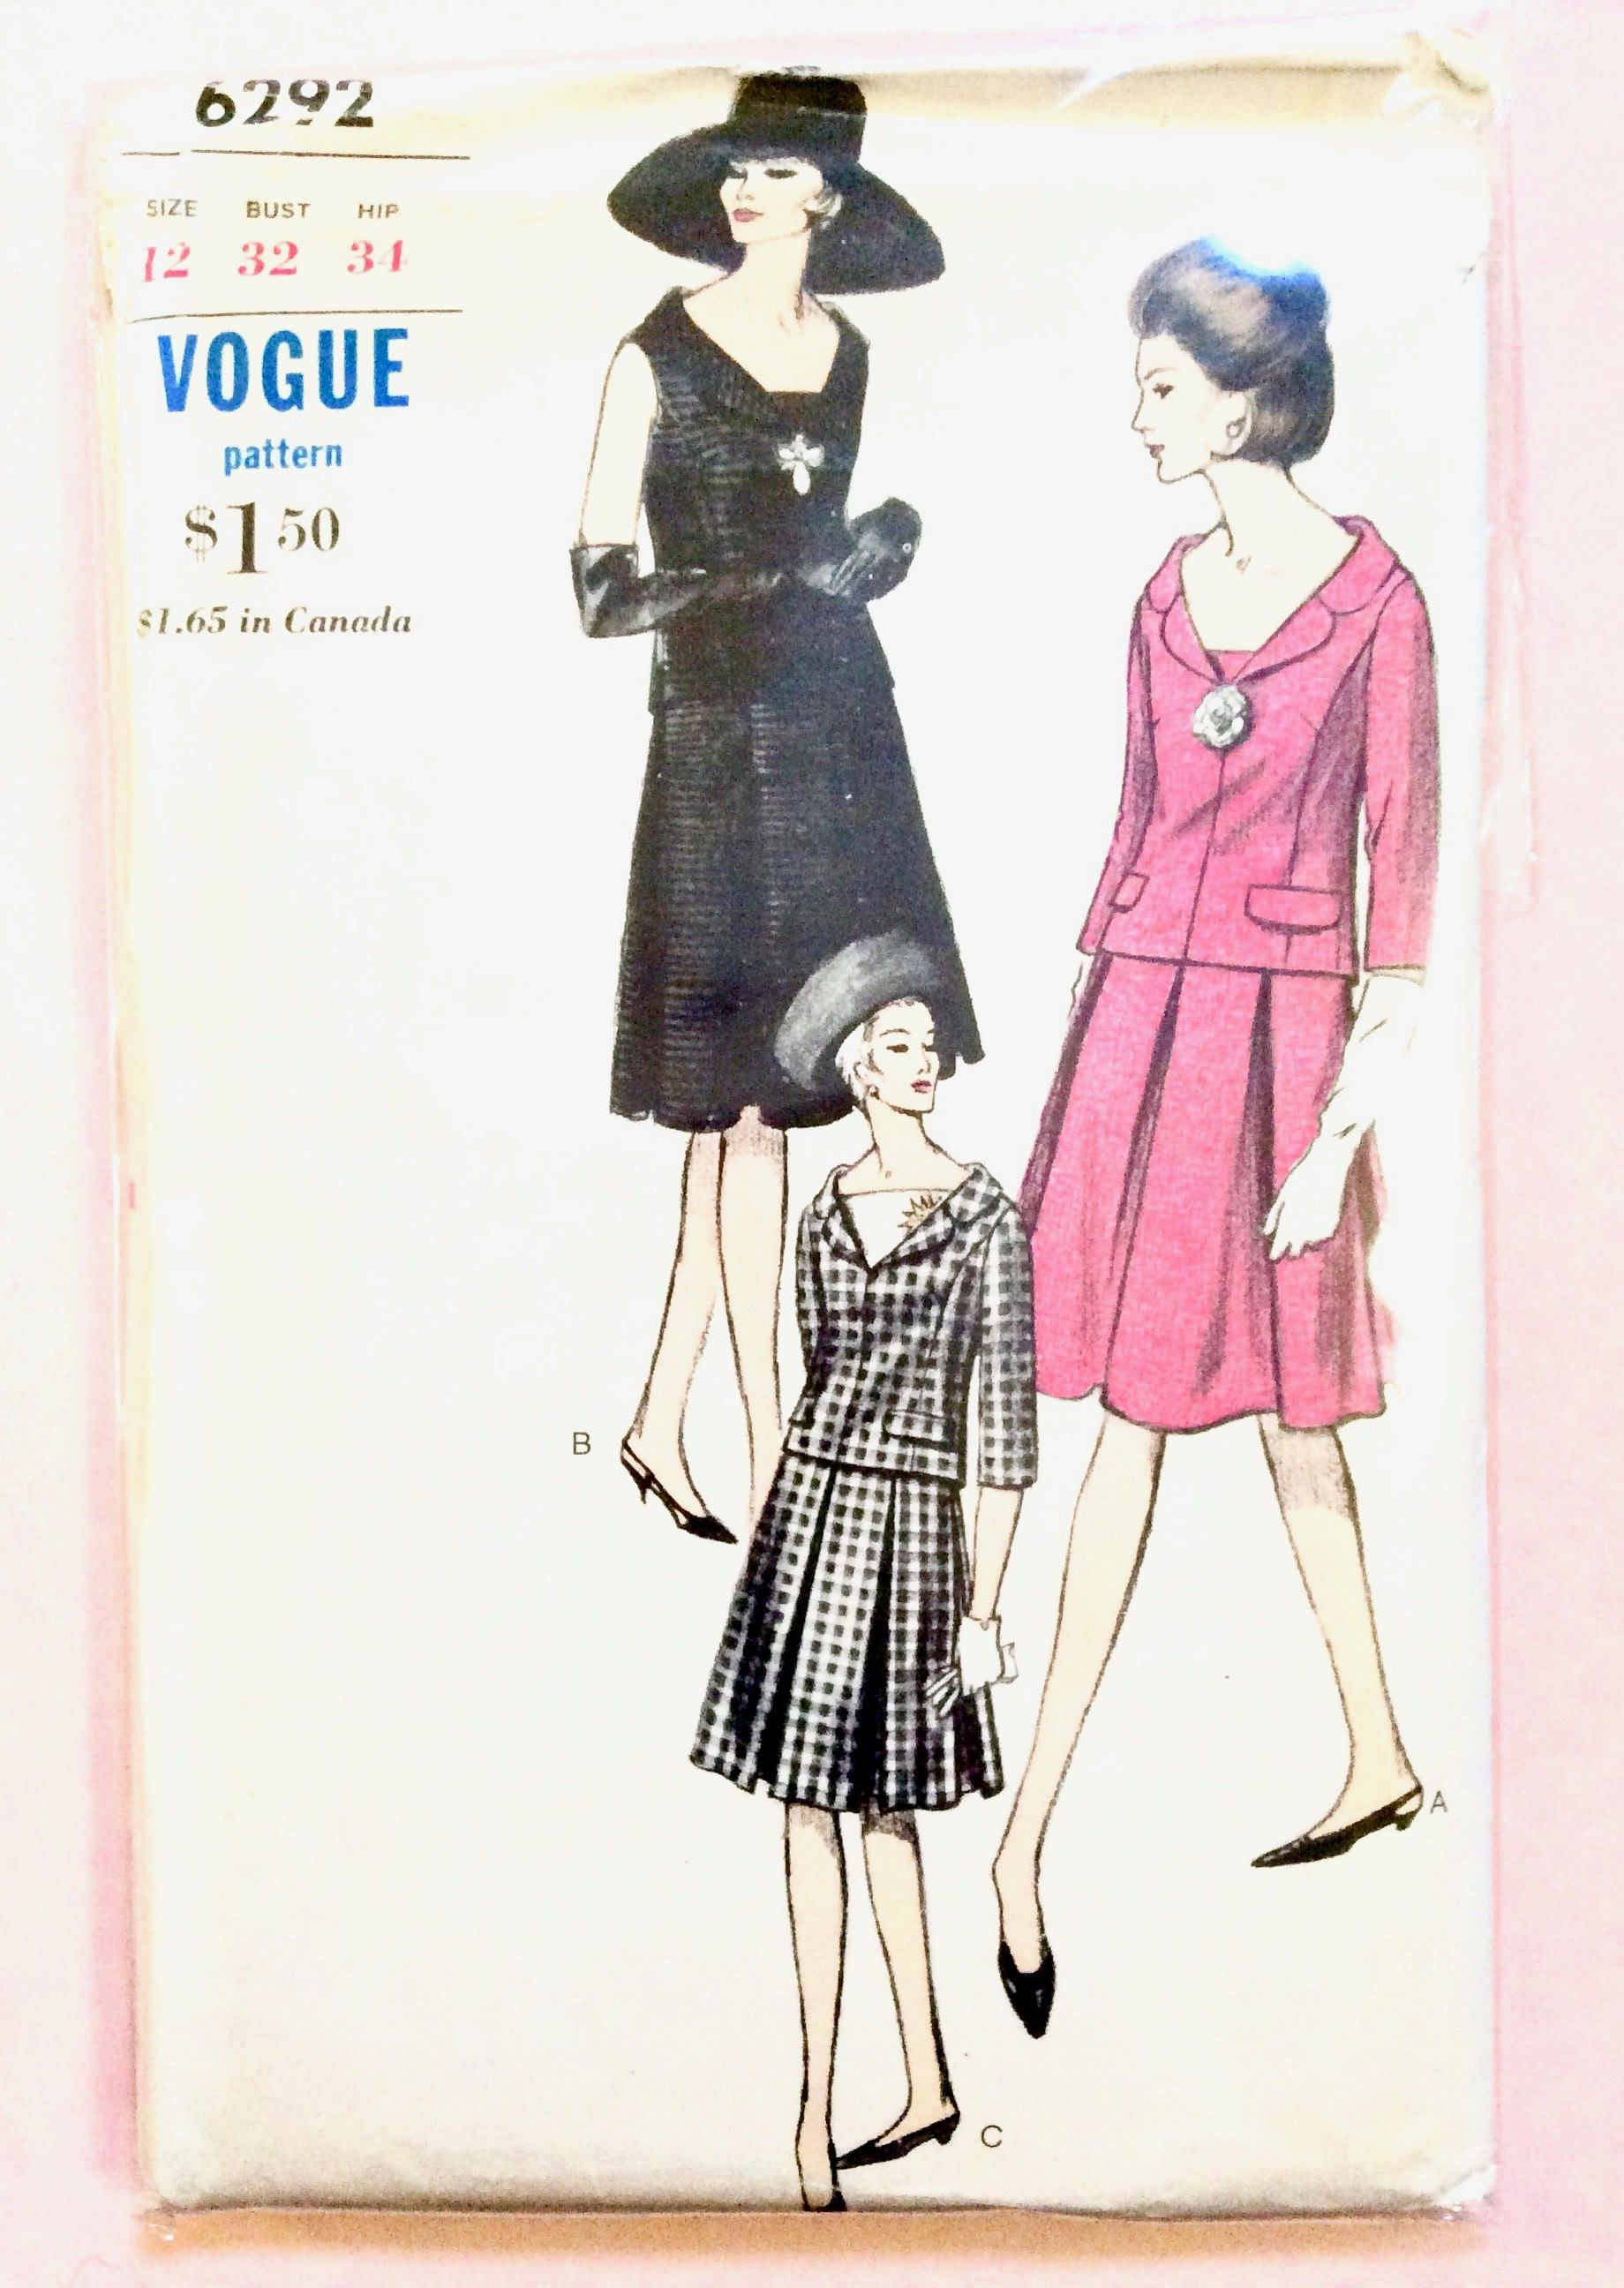 Vogue 6292 Two Piece Dress Overblouse Self Contrast Dickey Etsy Trendy Sewing Patterns Sewing Tutorials Clothes Skirt Patterns Sewing